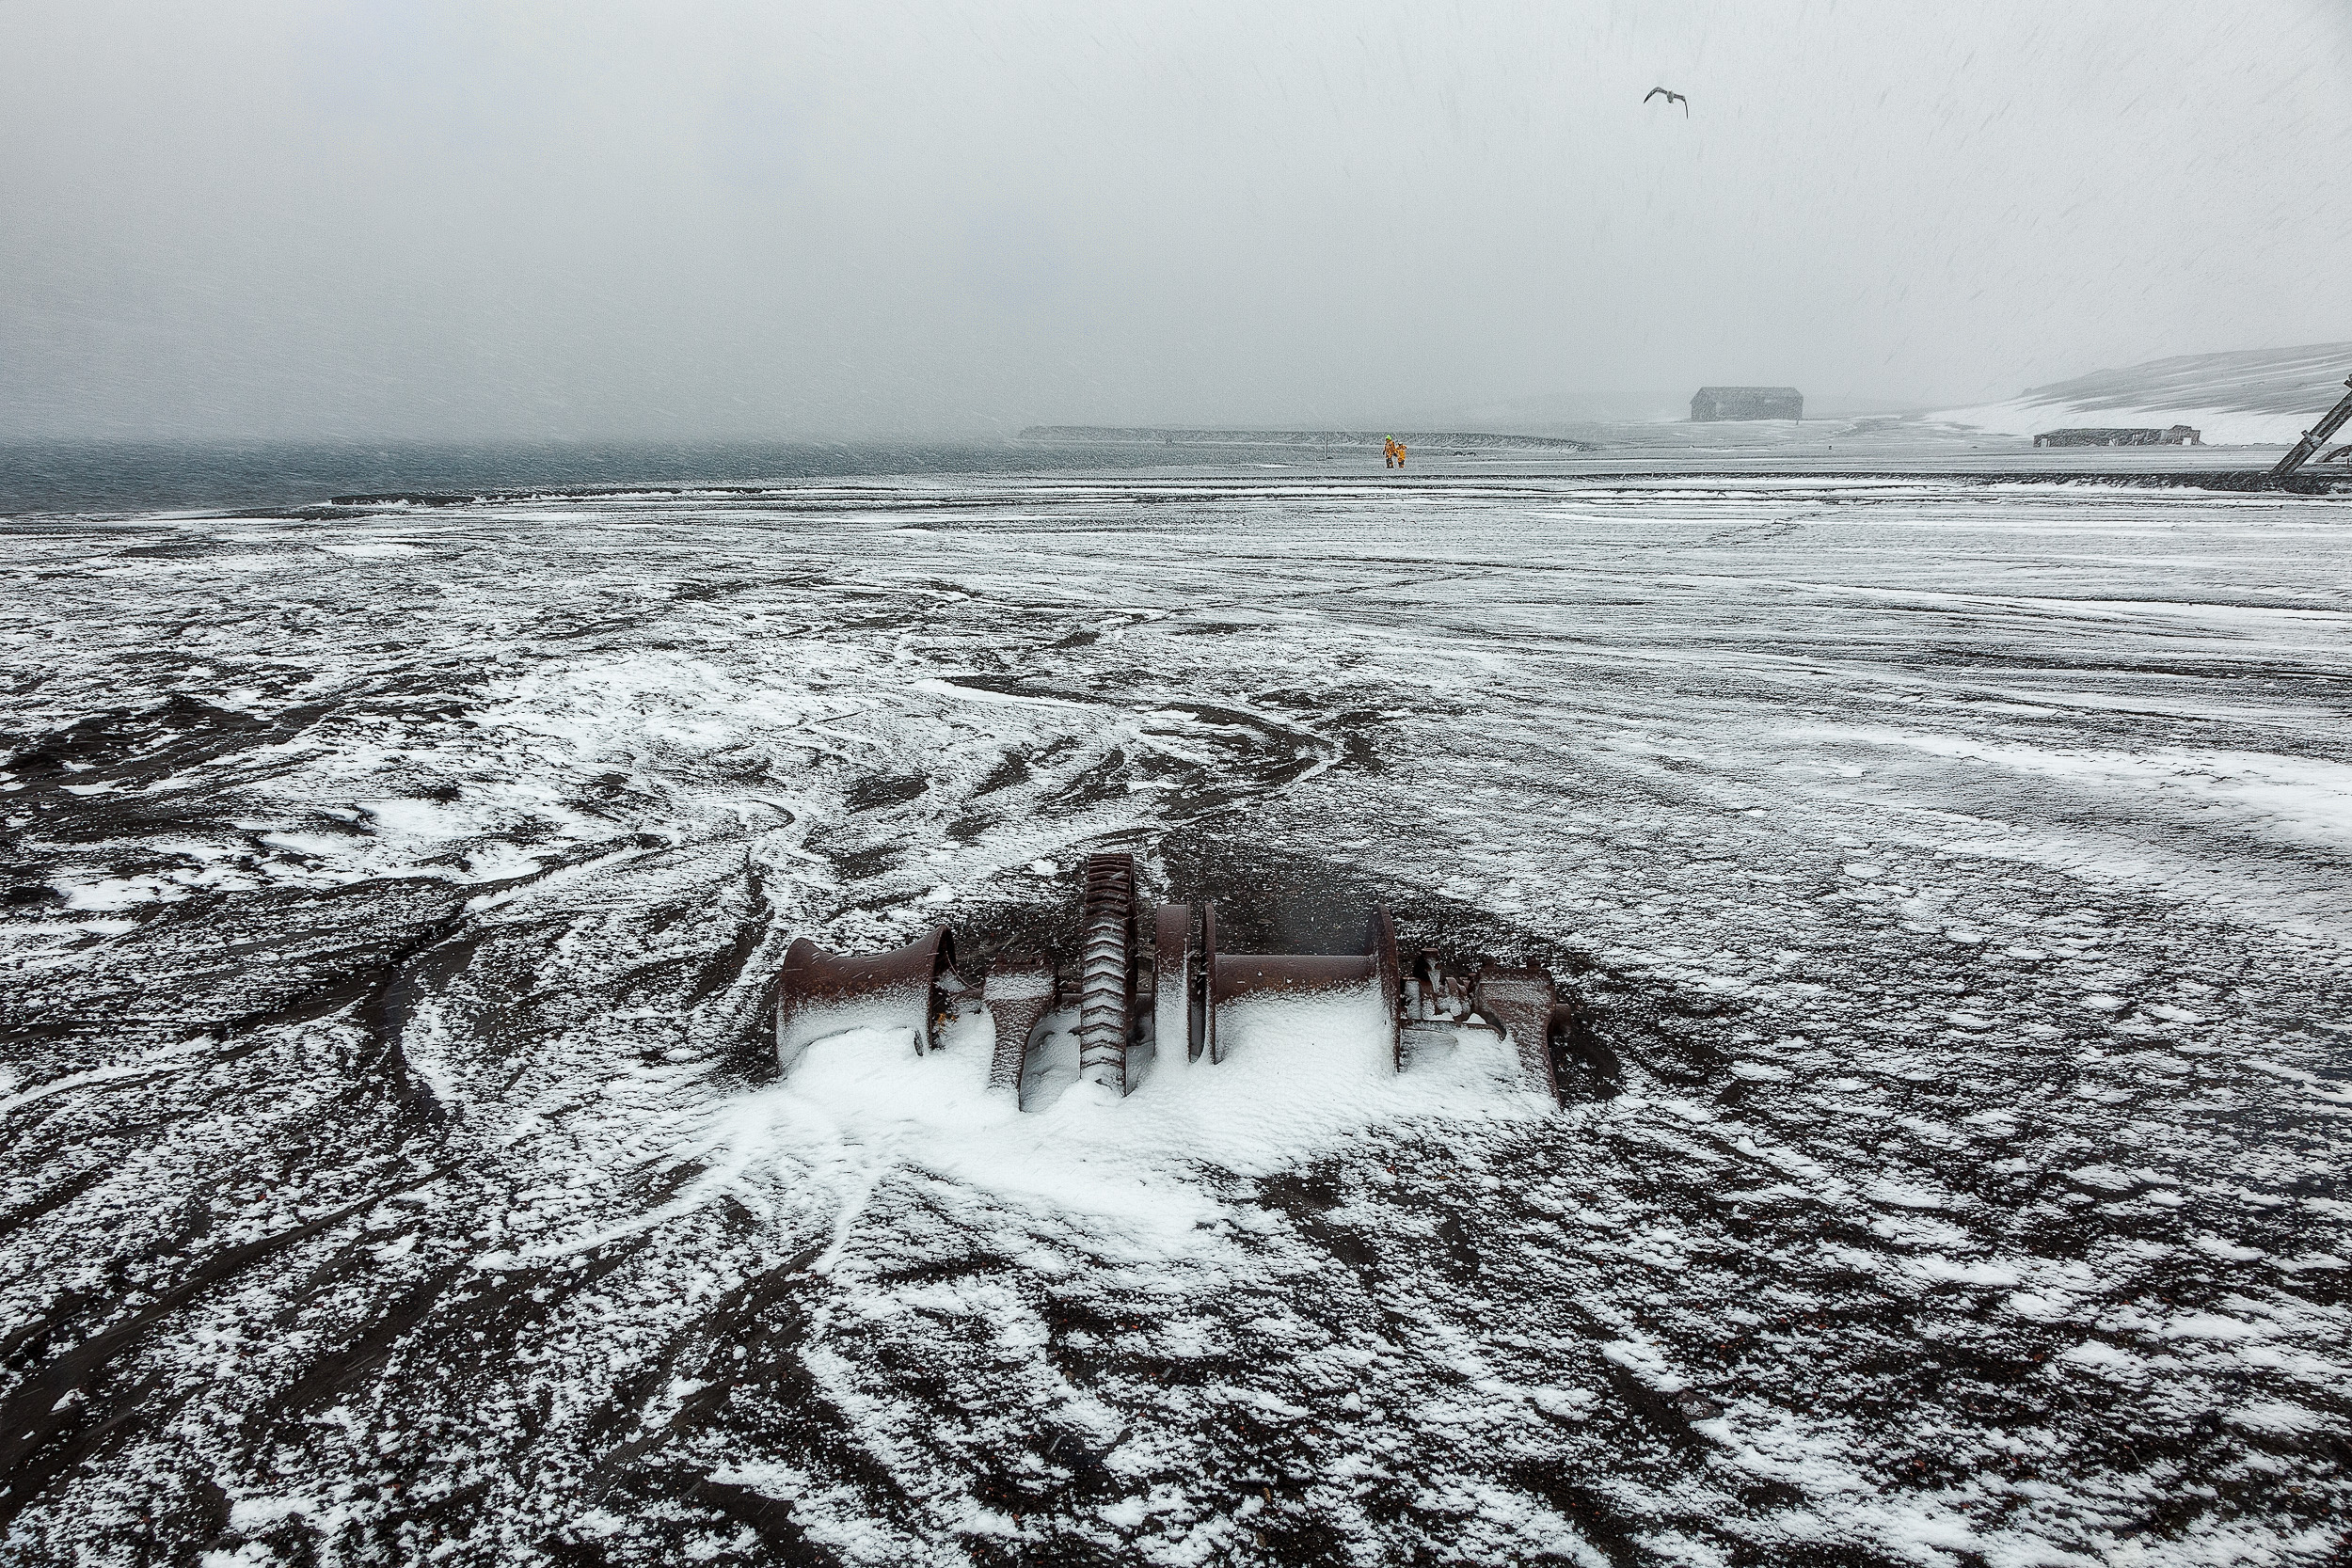 A    heavy snowstorm    sweeps over    Whalers Bay    and    Port Foster    on    Deception Island    in    Antarctica   .